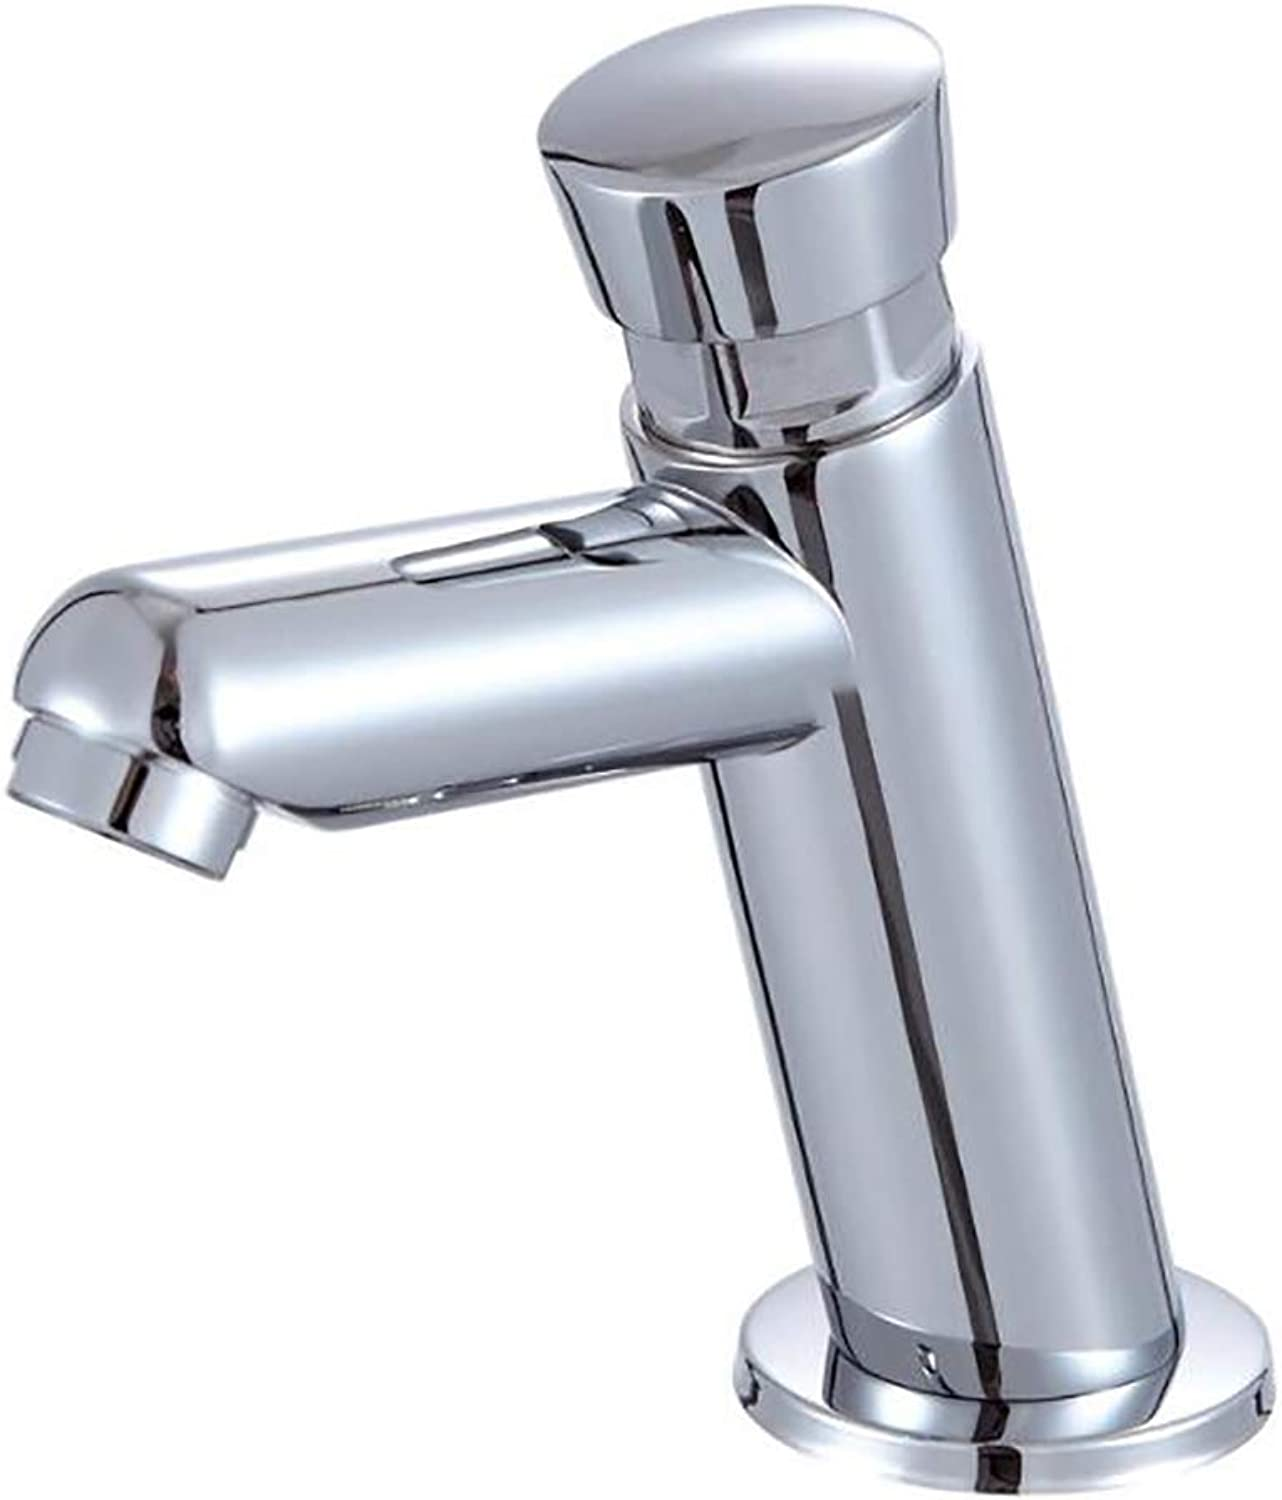 Waterfall Basin Sink Mixer Tap Bathroom Lever Faucet Waterfall Tap Leadless Hand Pressure